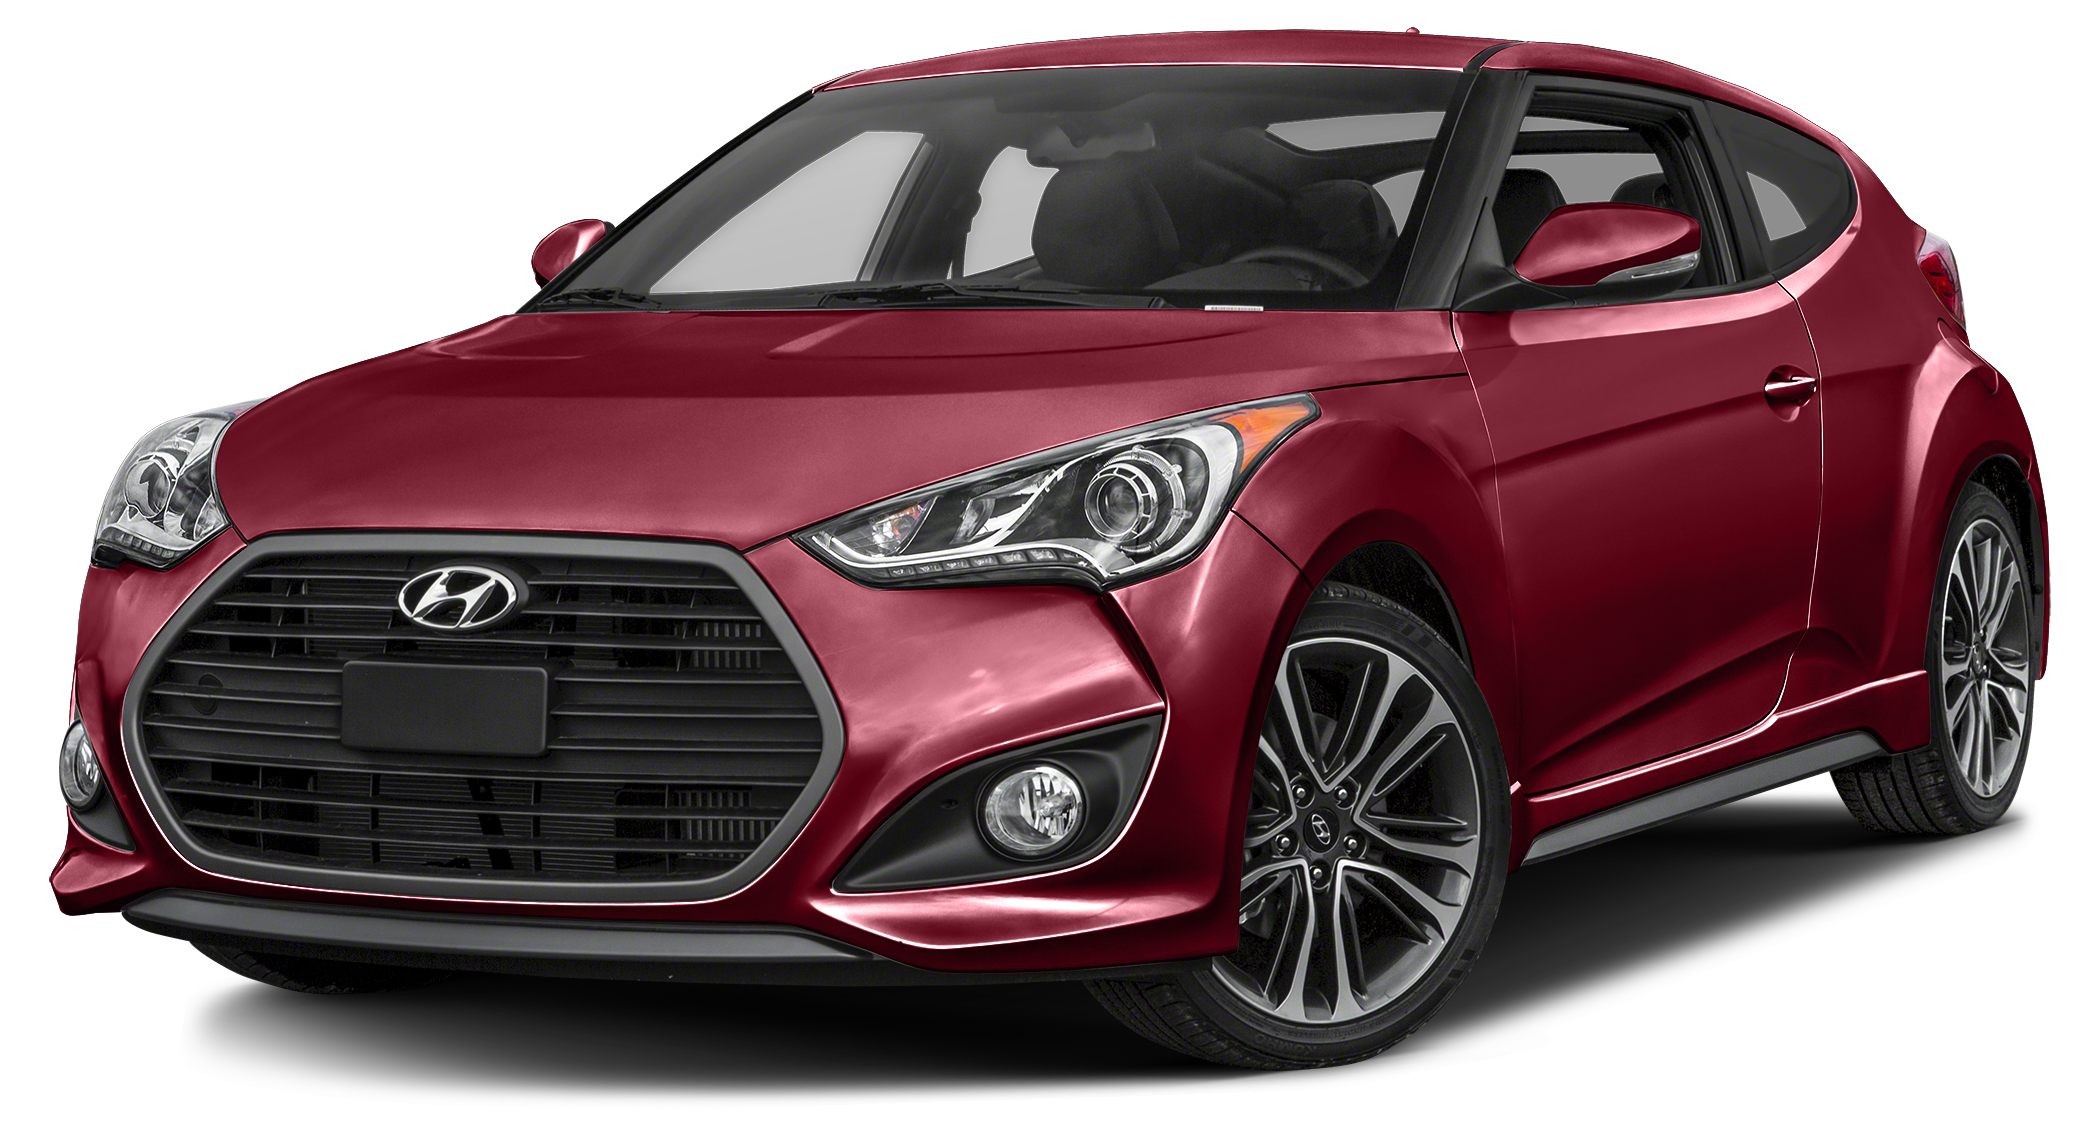 2016 Hyundai Veloster Turbo 2016 Hyundai Veloster Turbo in Red and Blue Tooth 18 x 75J Alloy wC